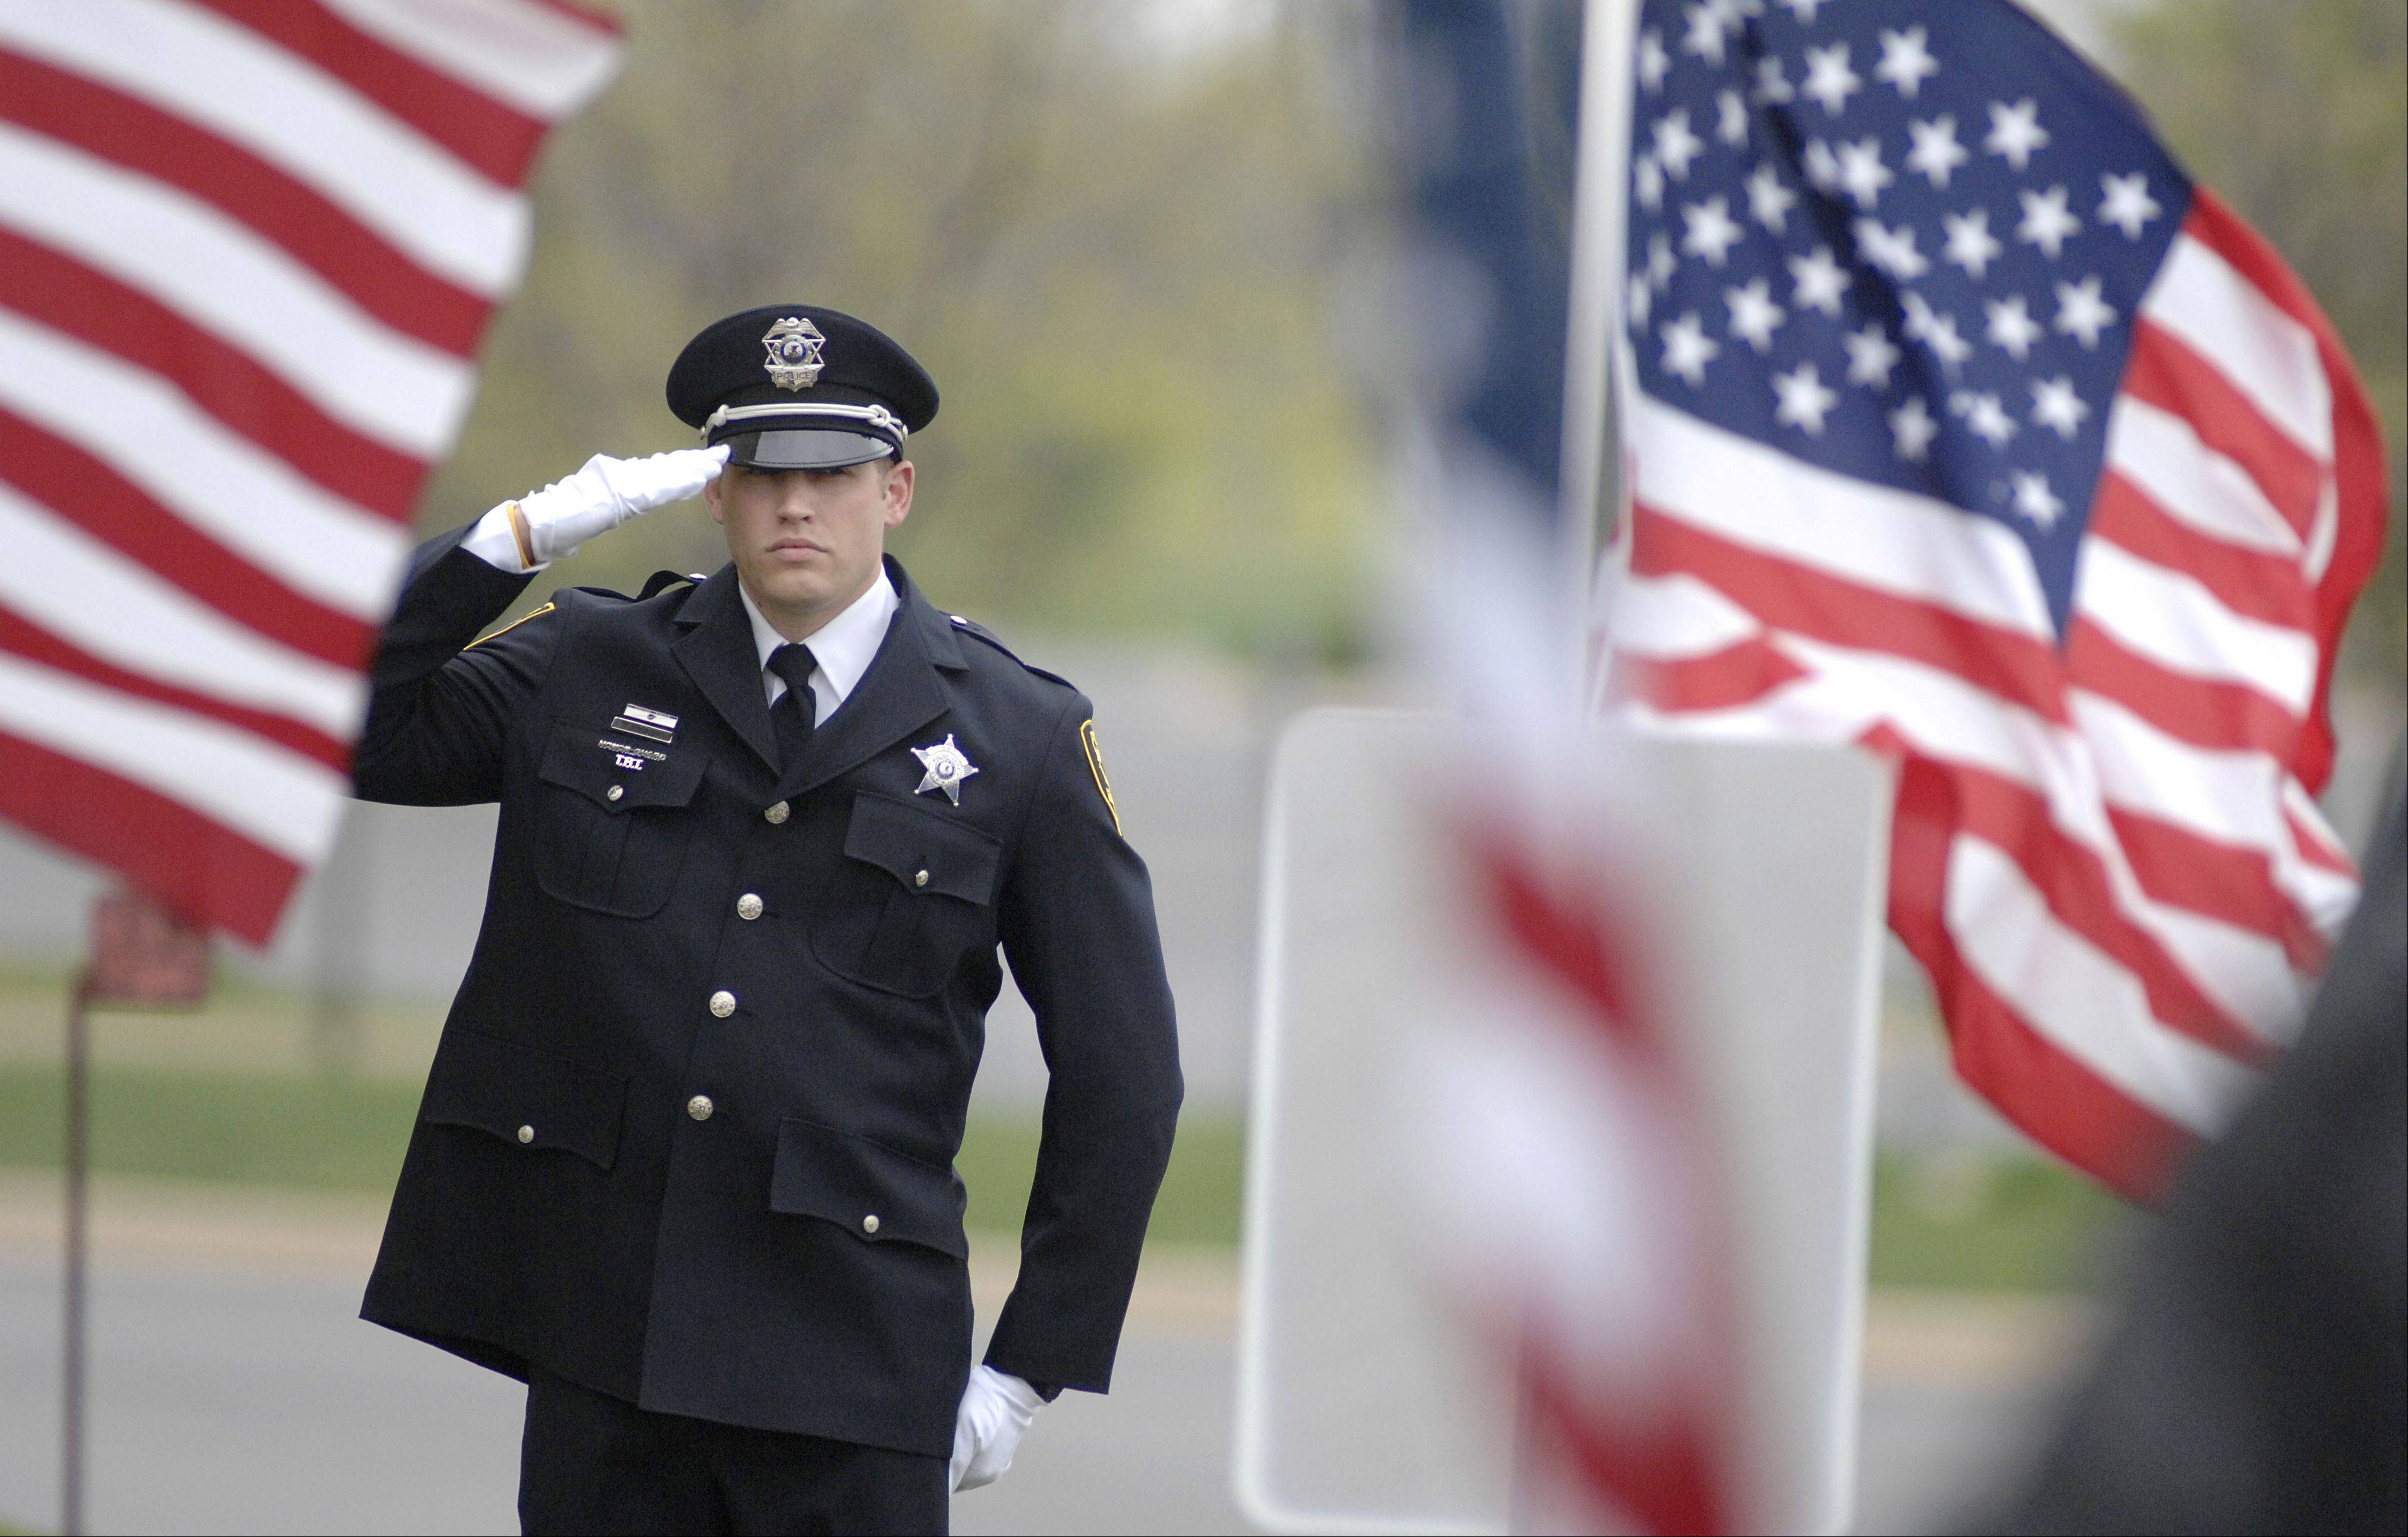 An Elgin police officer stands at attention as the casket of Cpl. Alex Martinez is loaded into the hearse Saturday after his funeral.